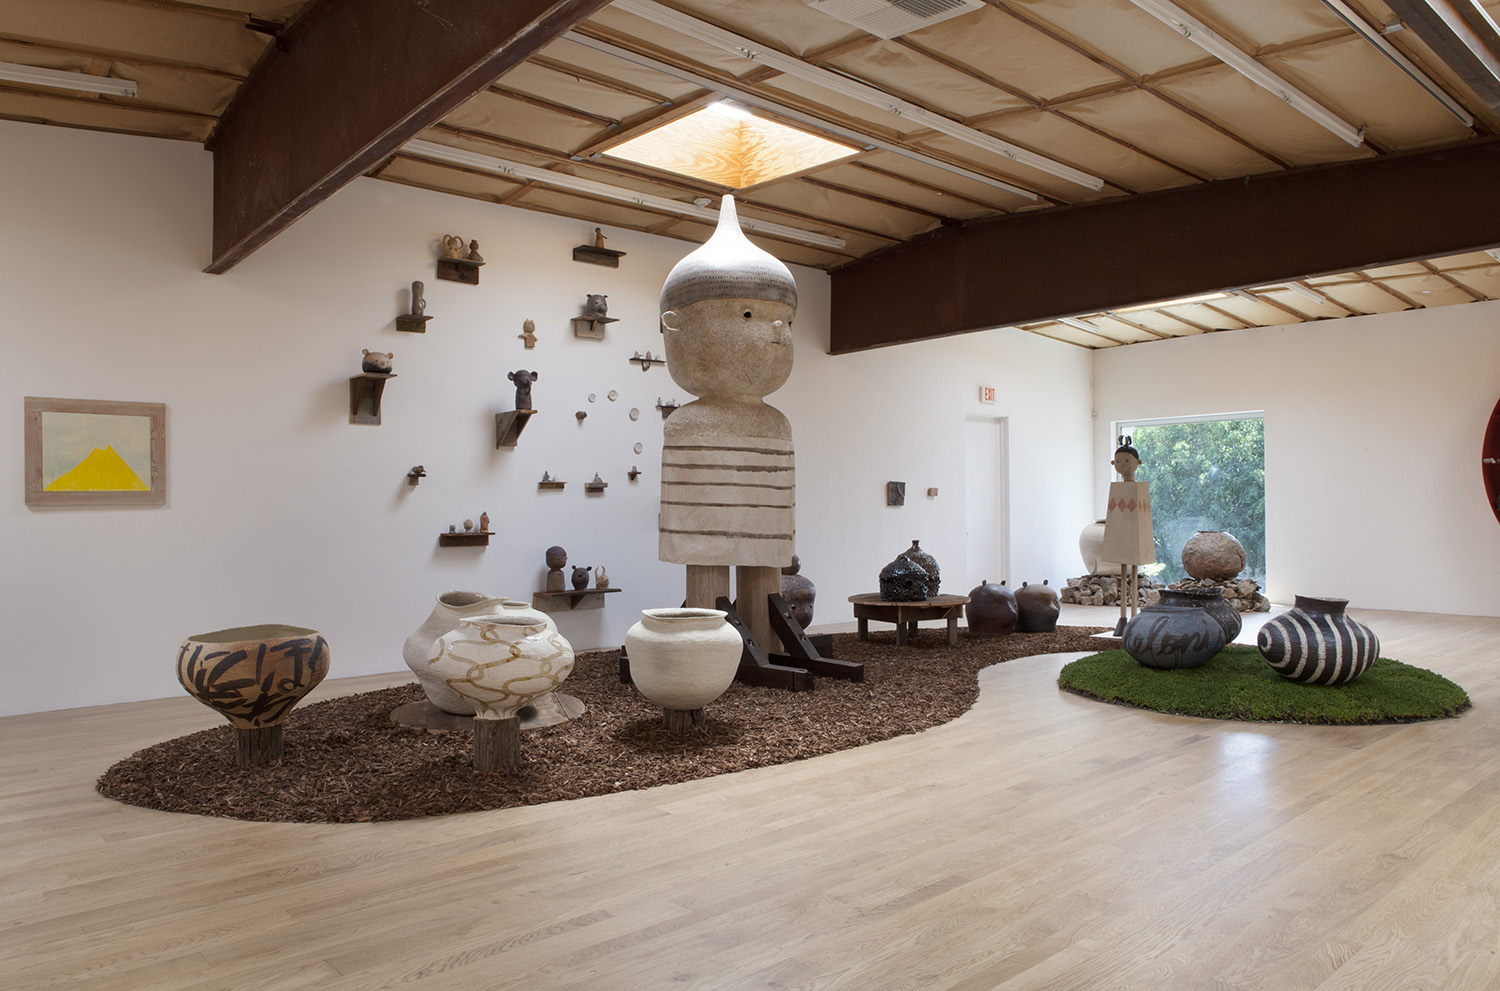 Kazunori Hamana, Yuji Ueda, and Otani Workshop. Installation view, 2015. Blum & Poe, Los Angeles